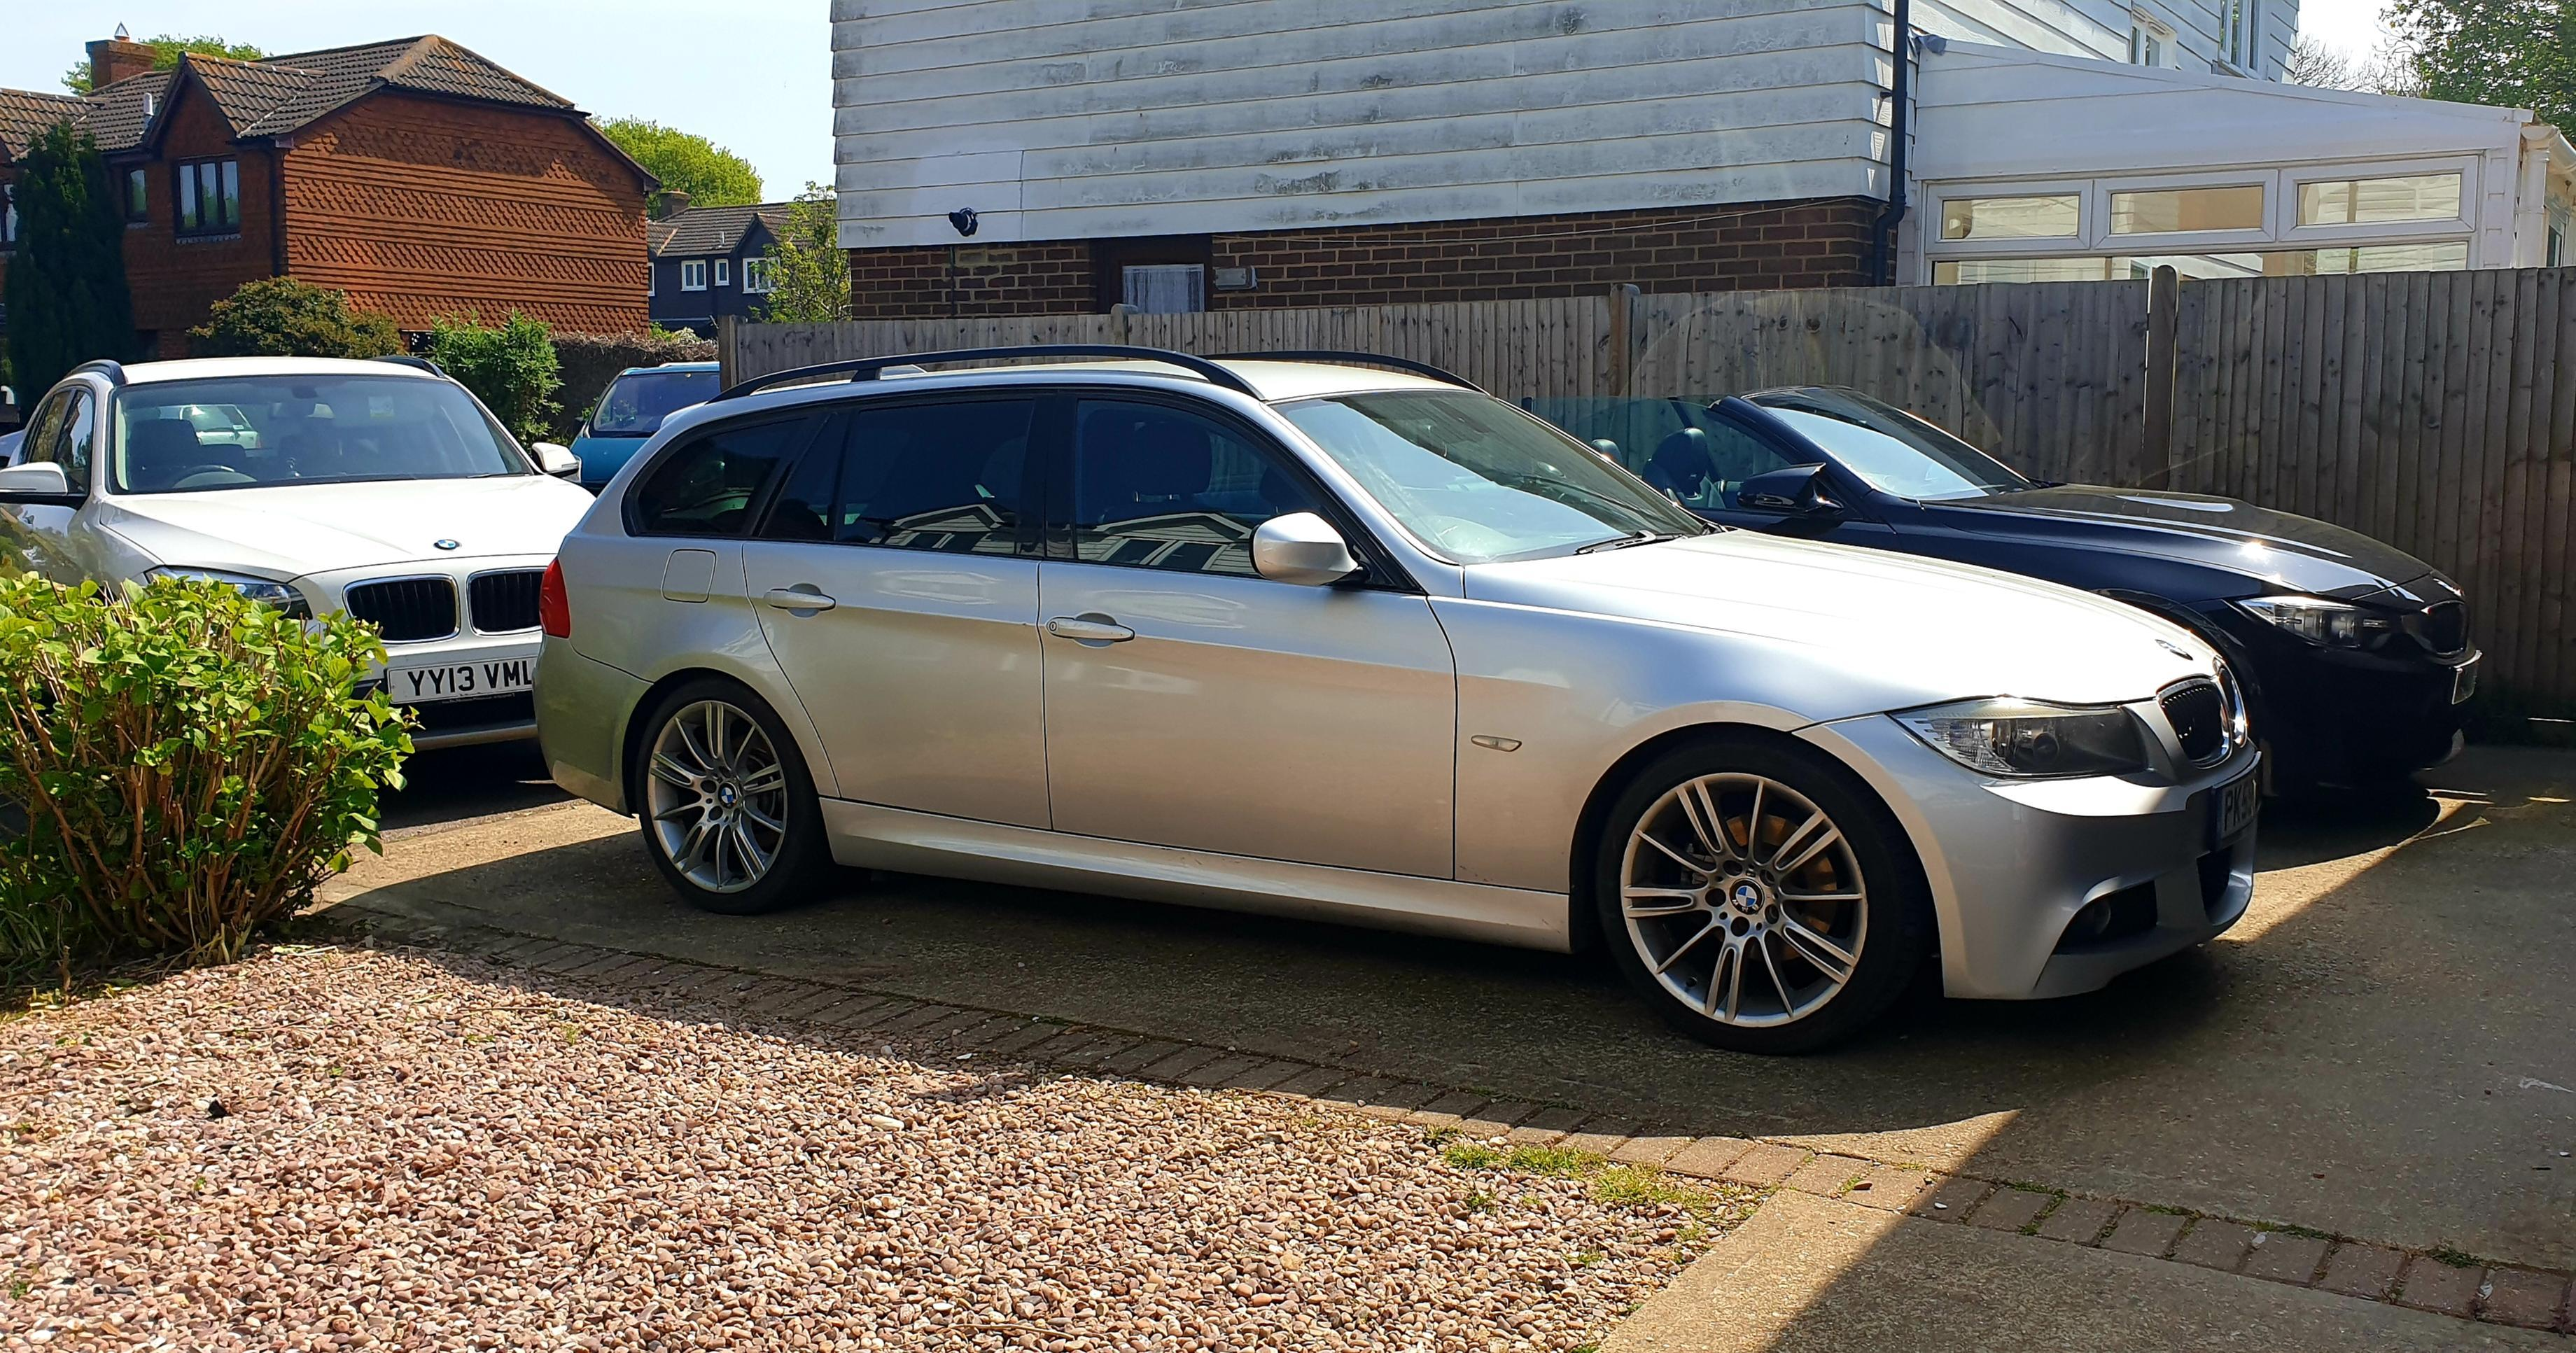 bmw 3 series touring 2009 m sport in hailsham friday ad. Black Bedroom Furniture Sets. Home Design Ideas